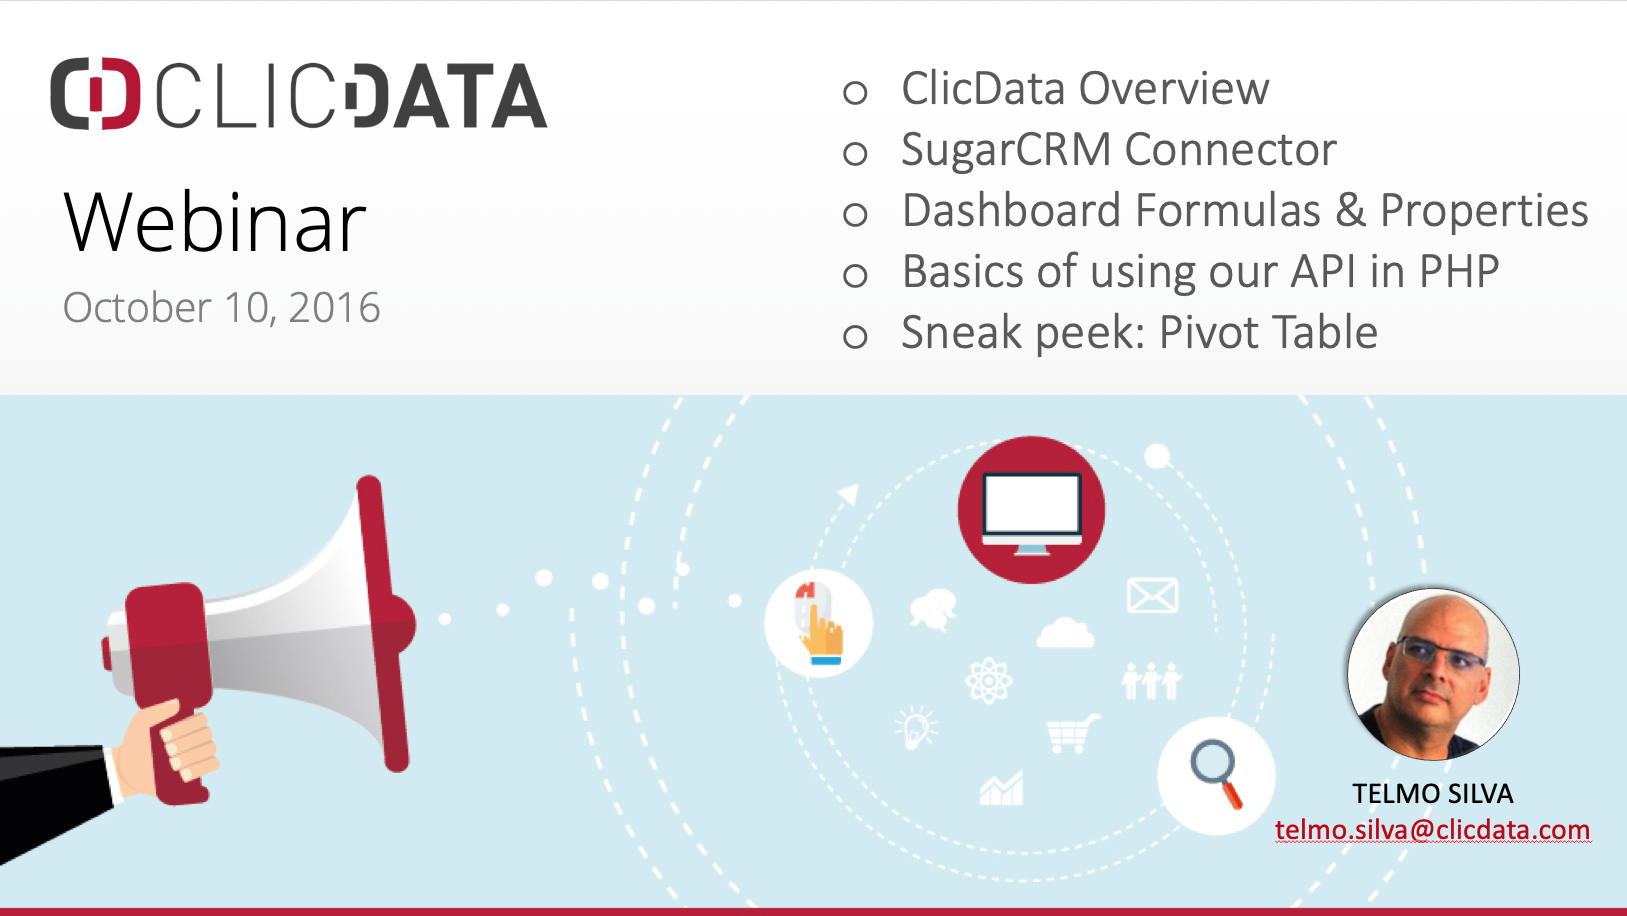 Learn how to connect your SugarCRM data and other business applications with our API connectors and web services